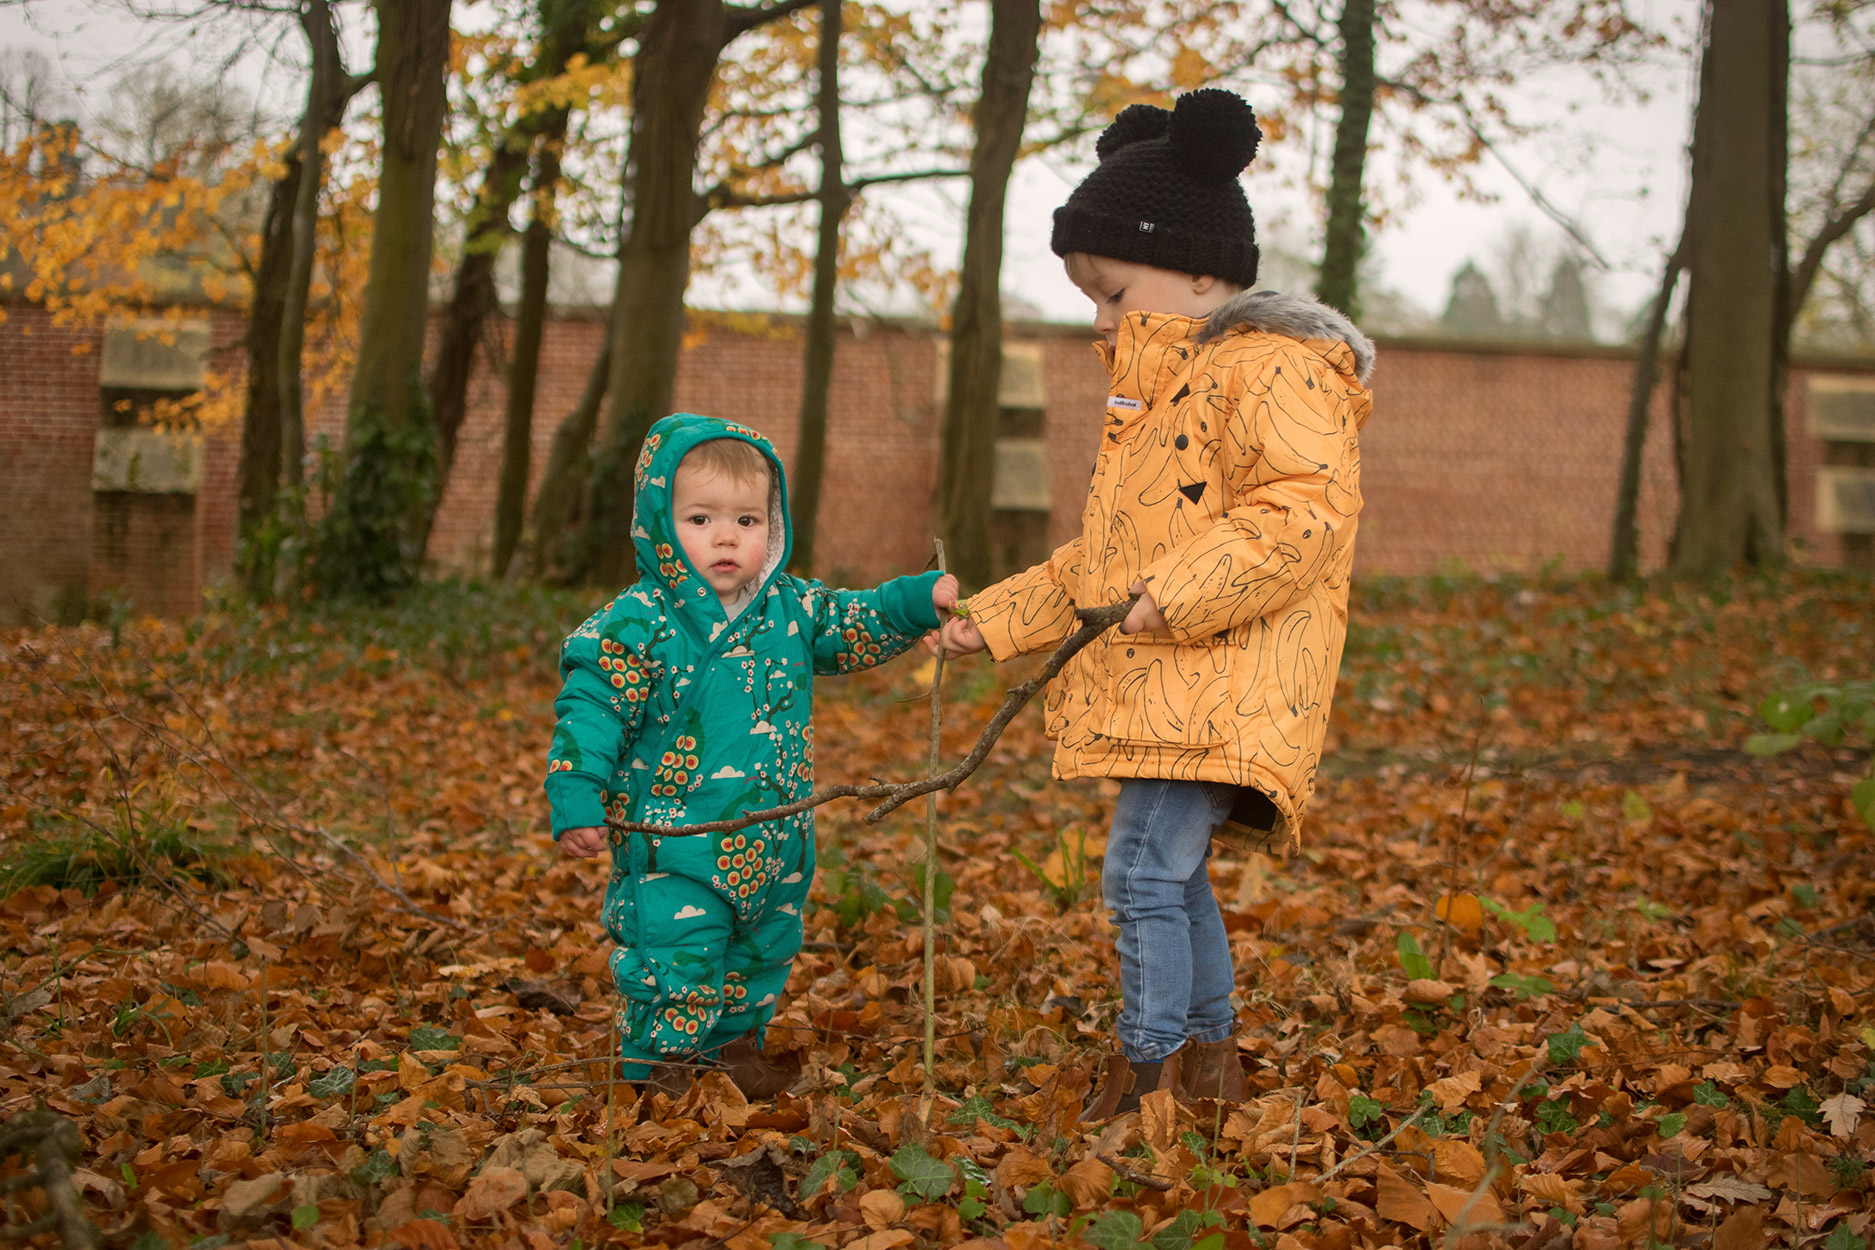 Two young brothers enjoying a day out in the woods playing and picking sticks wearing Little Green Radicals midnight peacocks snowsuit and Indikidual banana print coat with Bobux iWalk brown outback boots